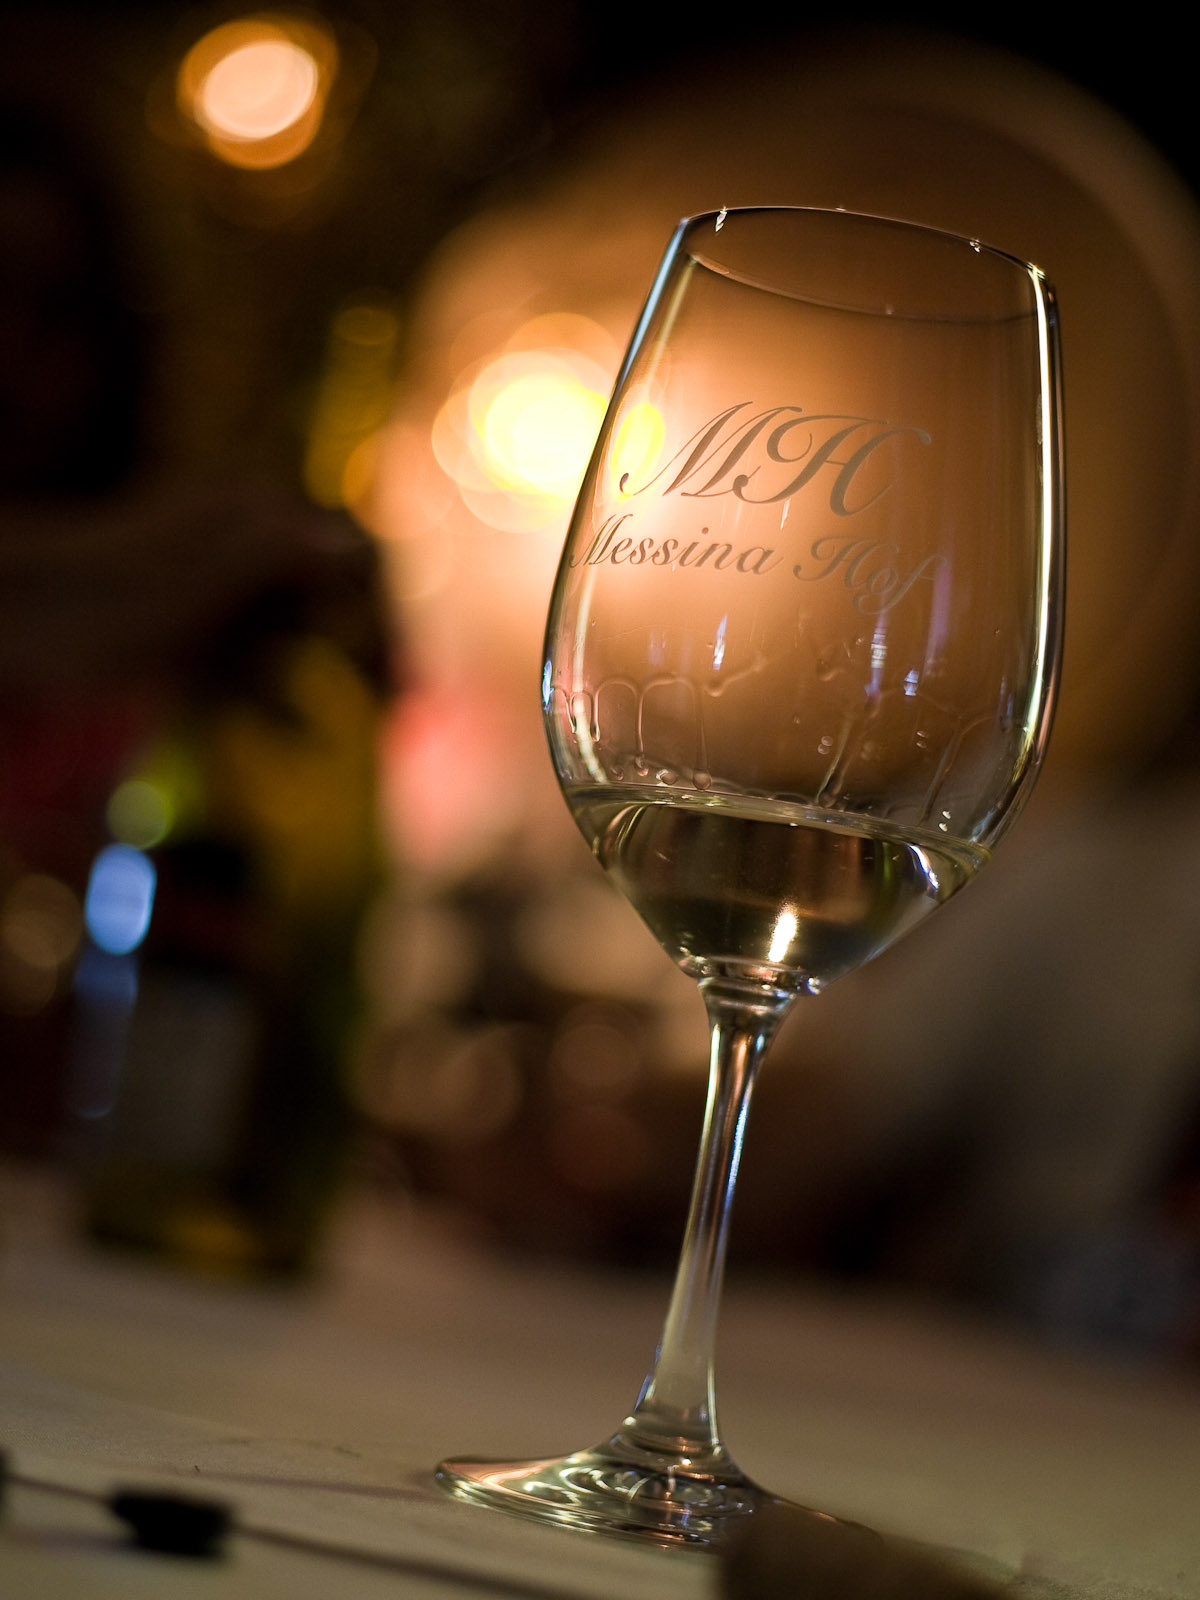 News_Messina Hof_chardonnay_wine glass